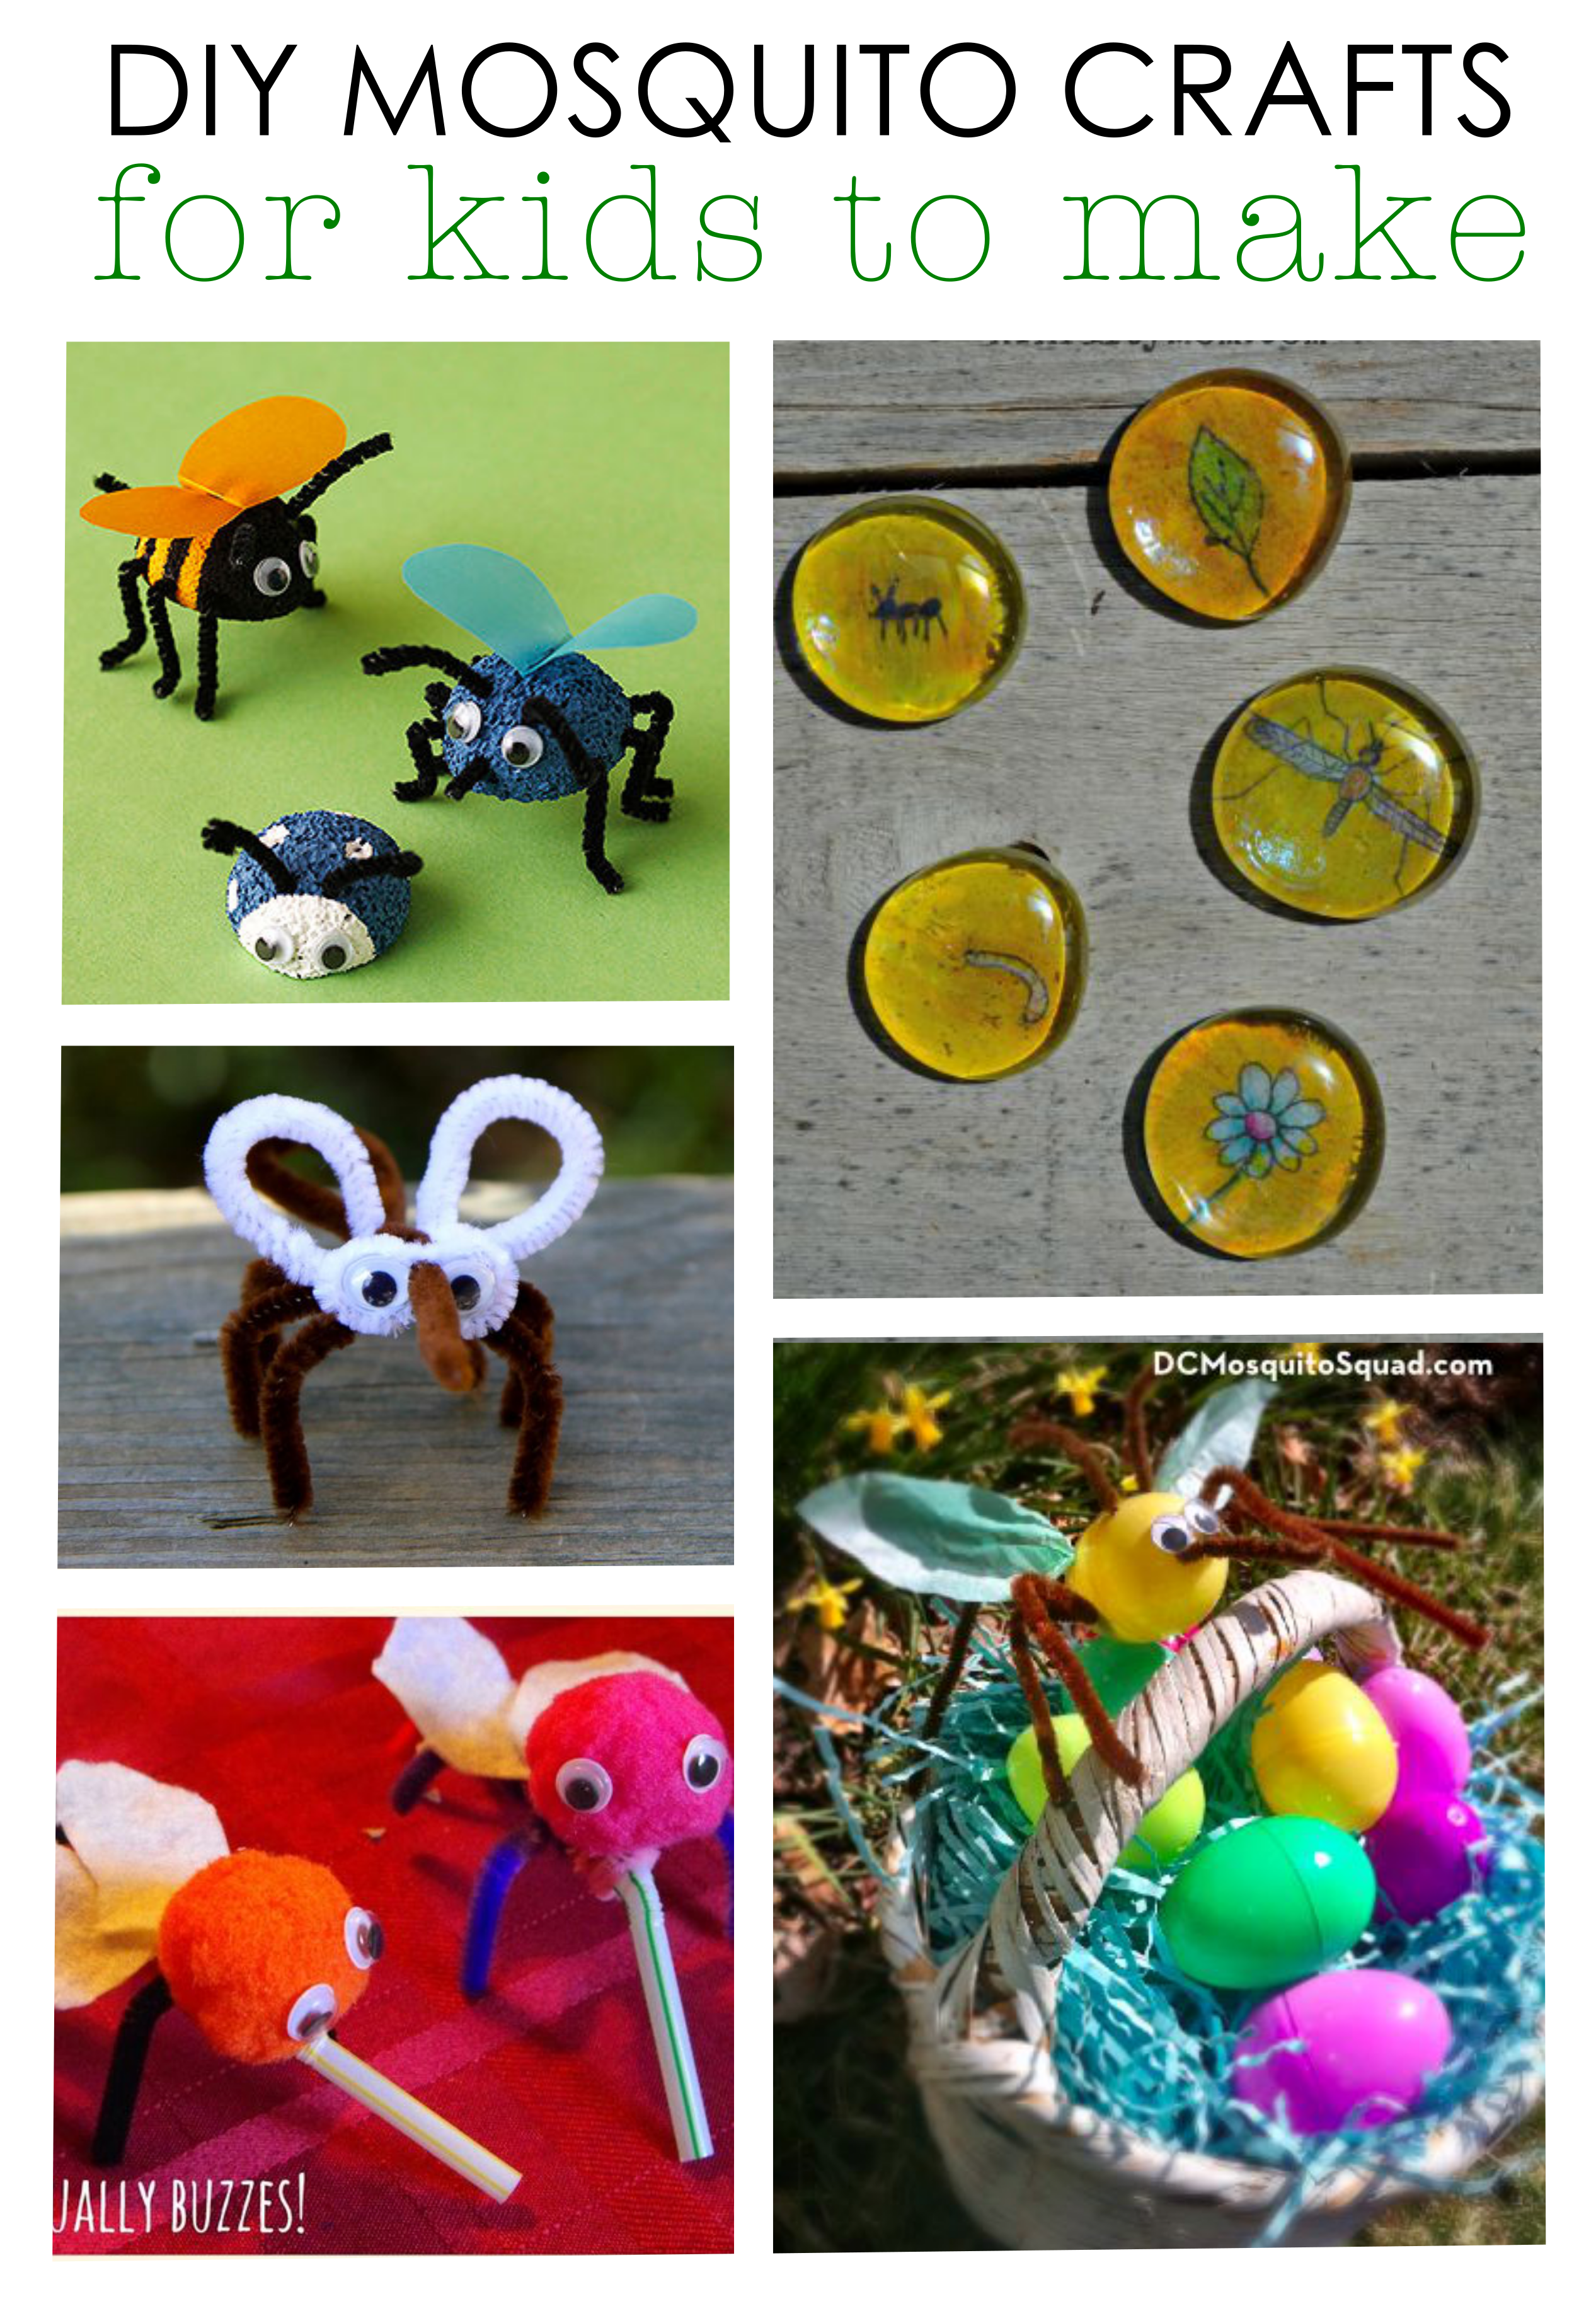 the best diy mosquito crafts for kids if you have egg cartons